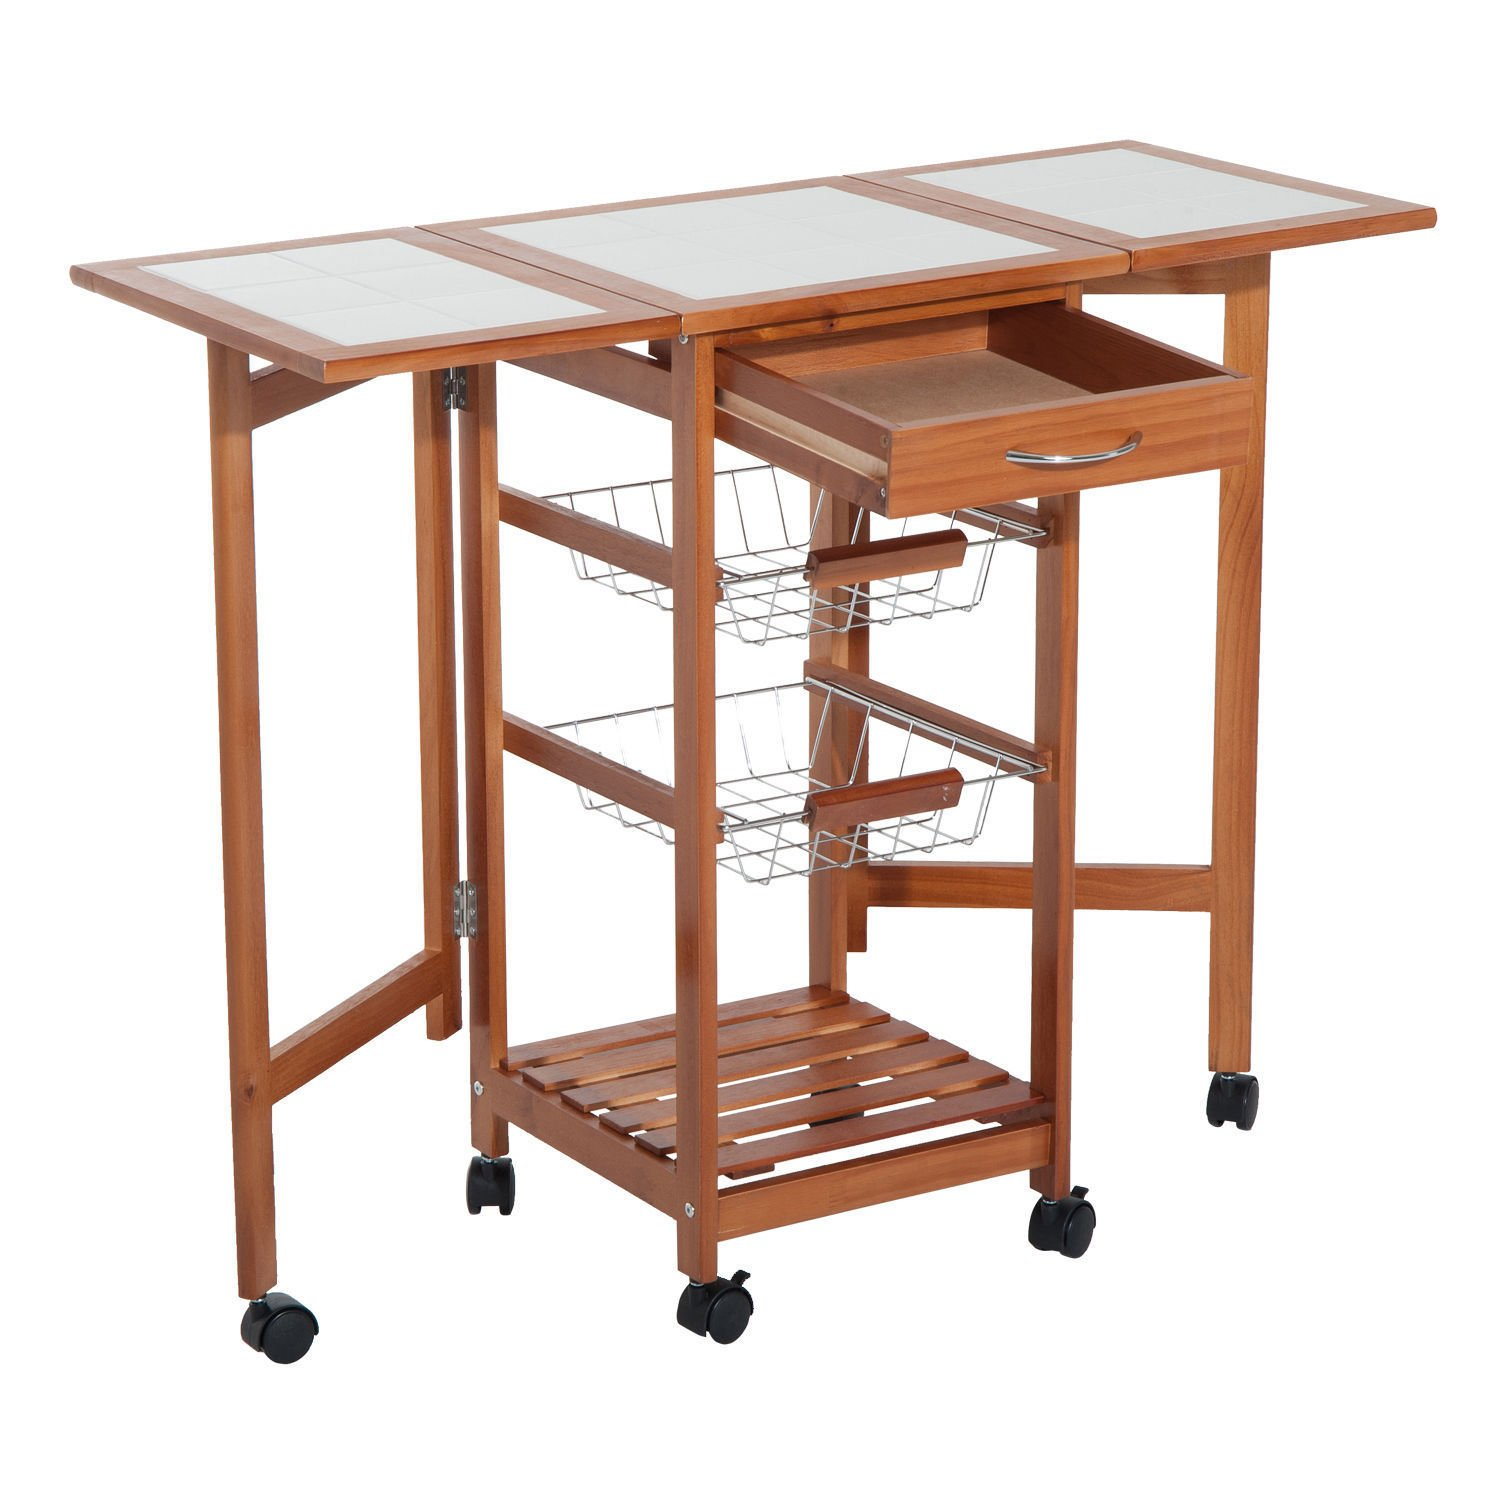 totoshop Portable Rolling Drop Leaf Kitchen Storage Island Cart Trolley Folding Table